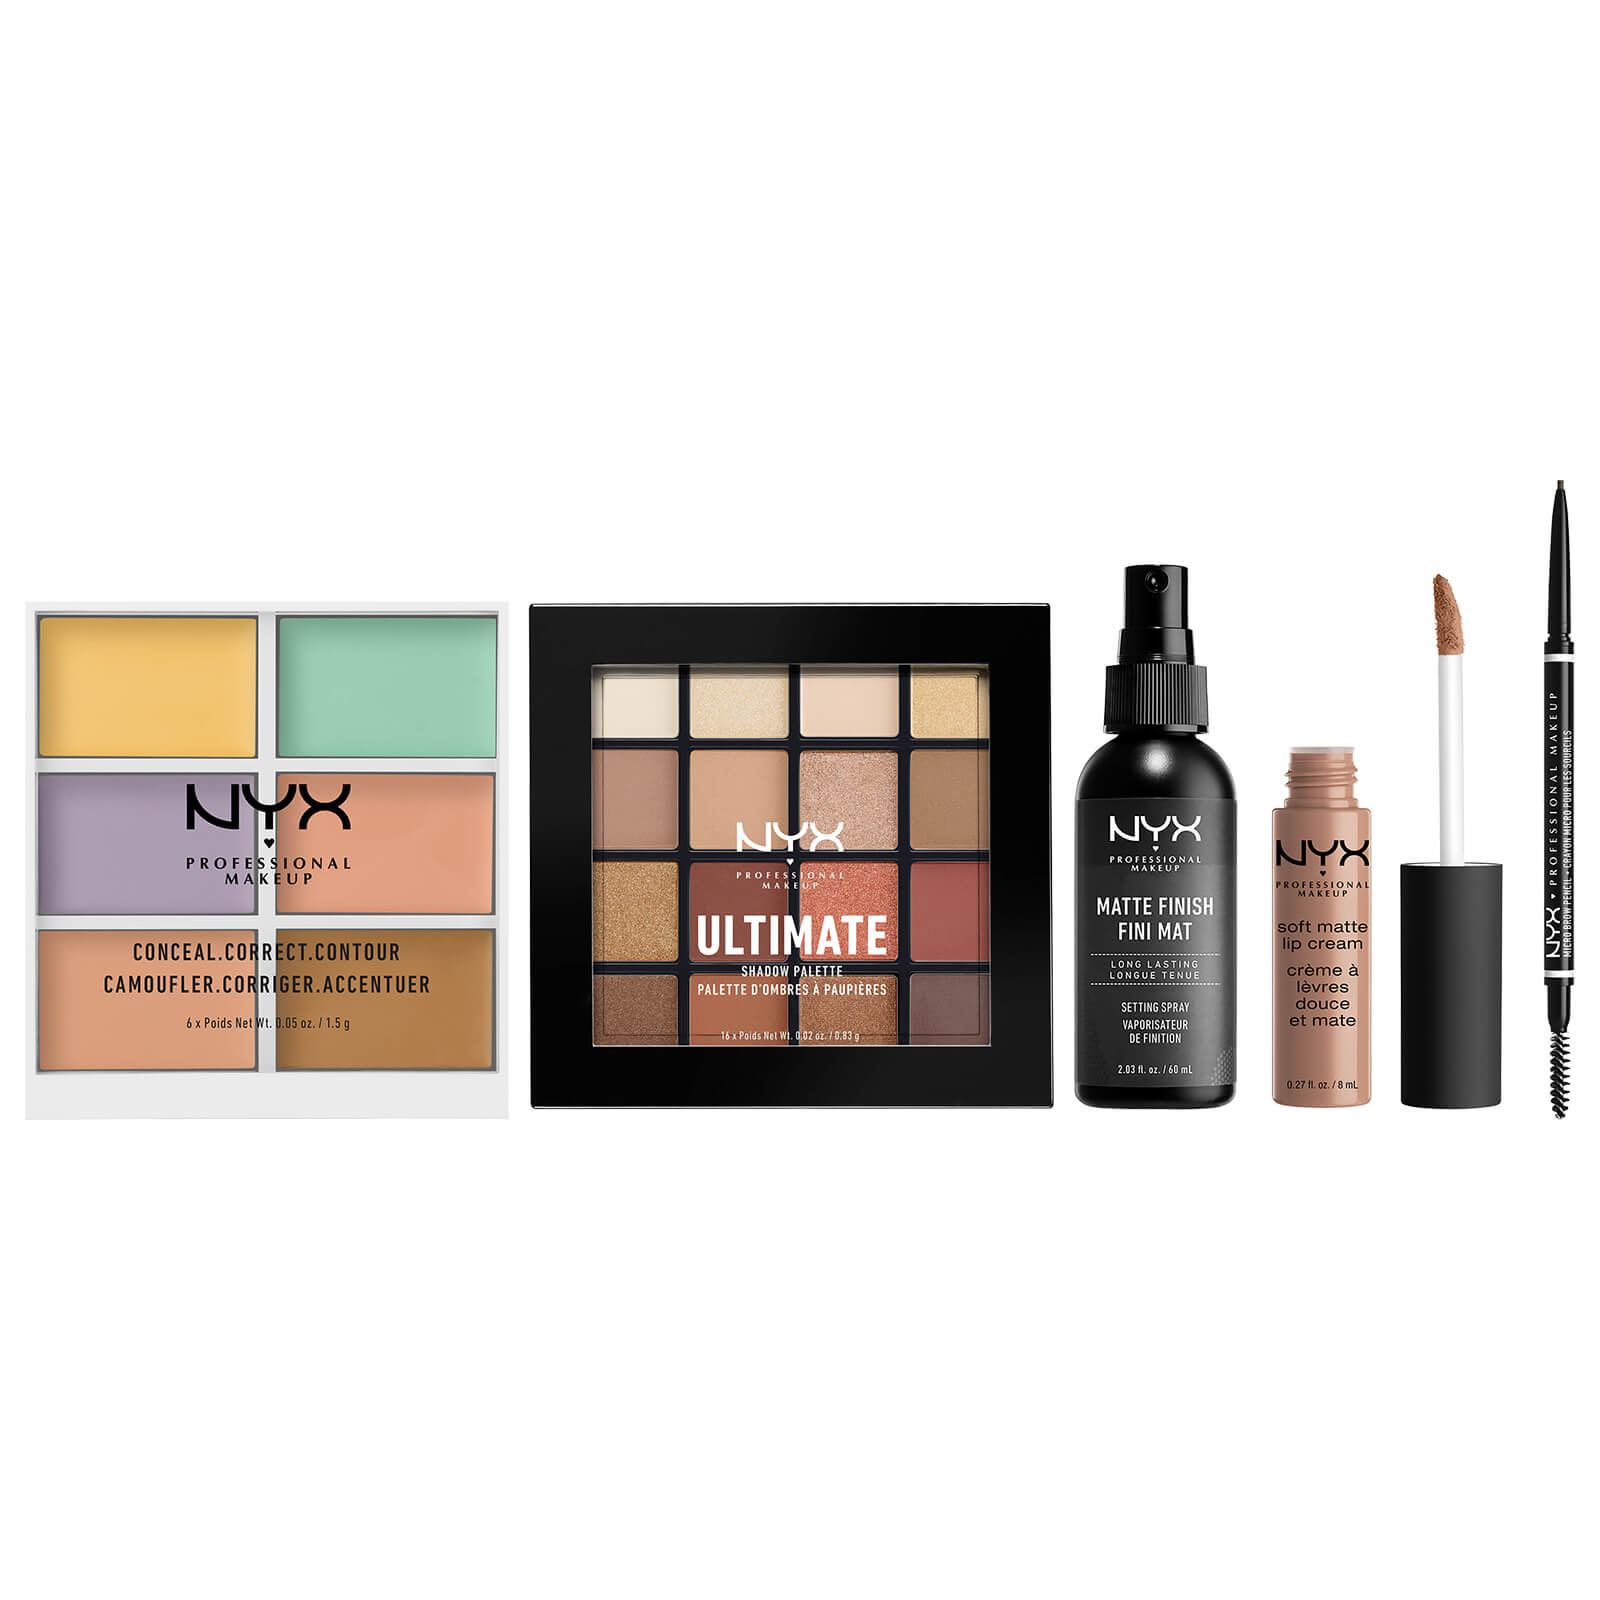 Nyx Professional Makeup New Year